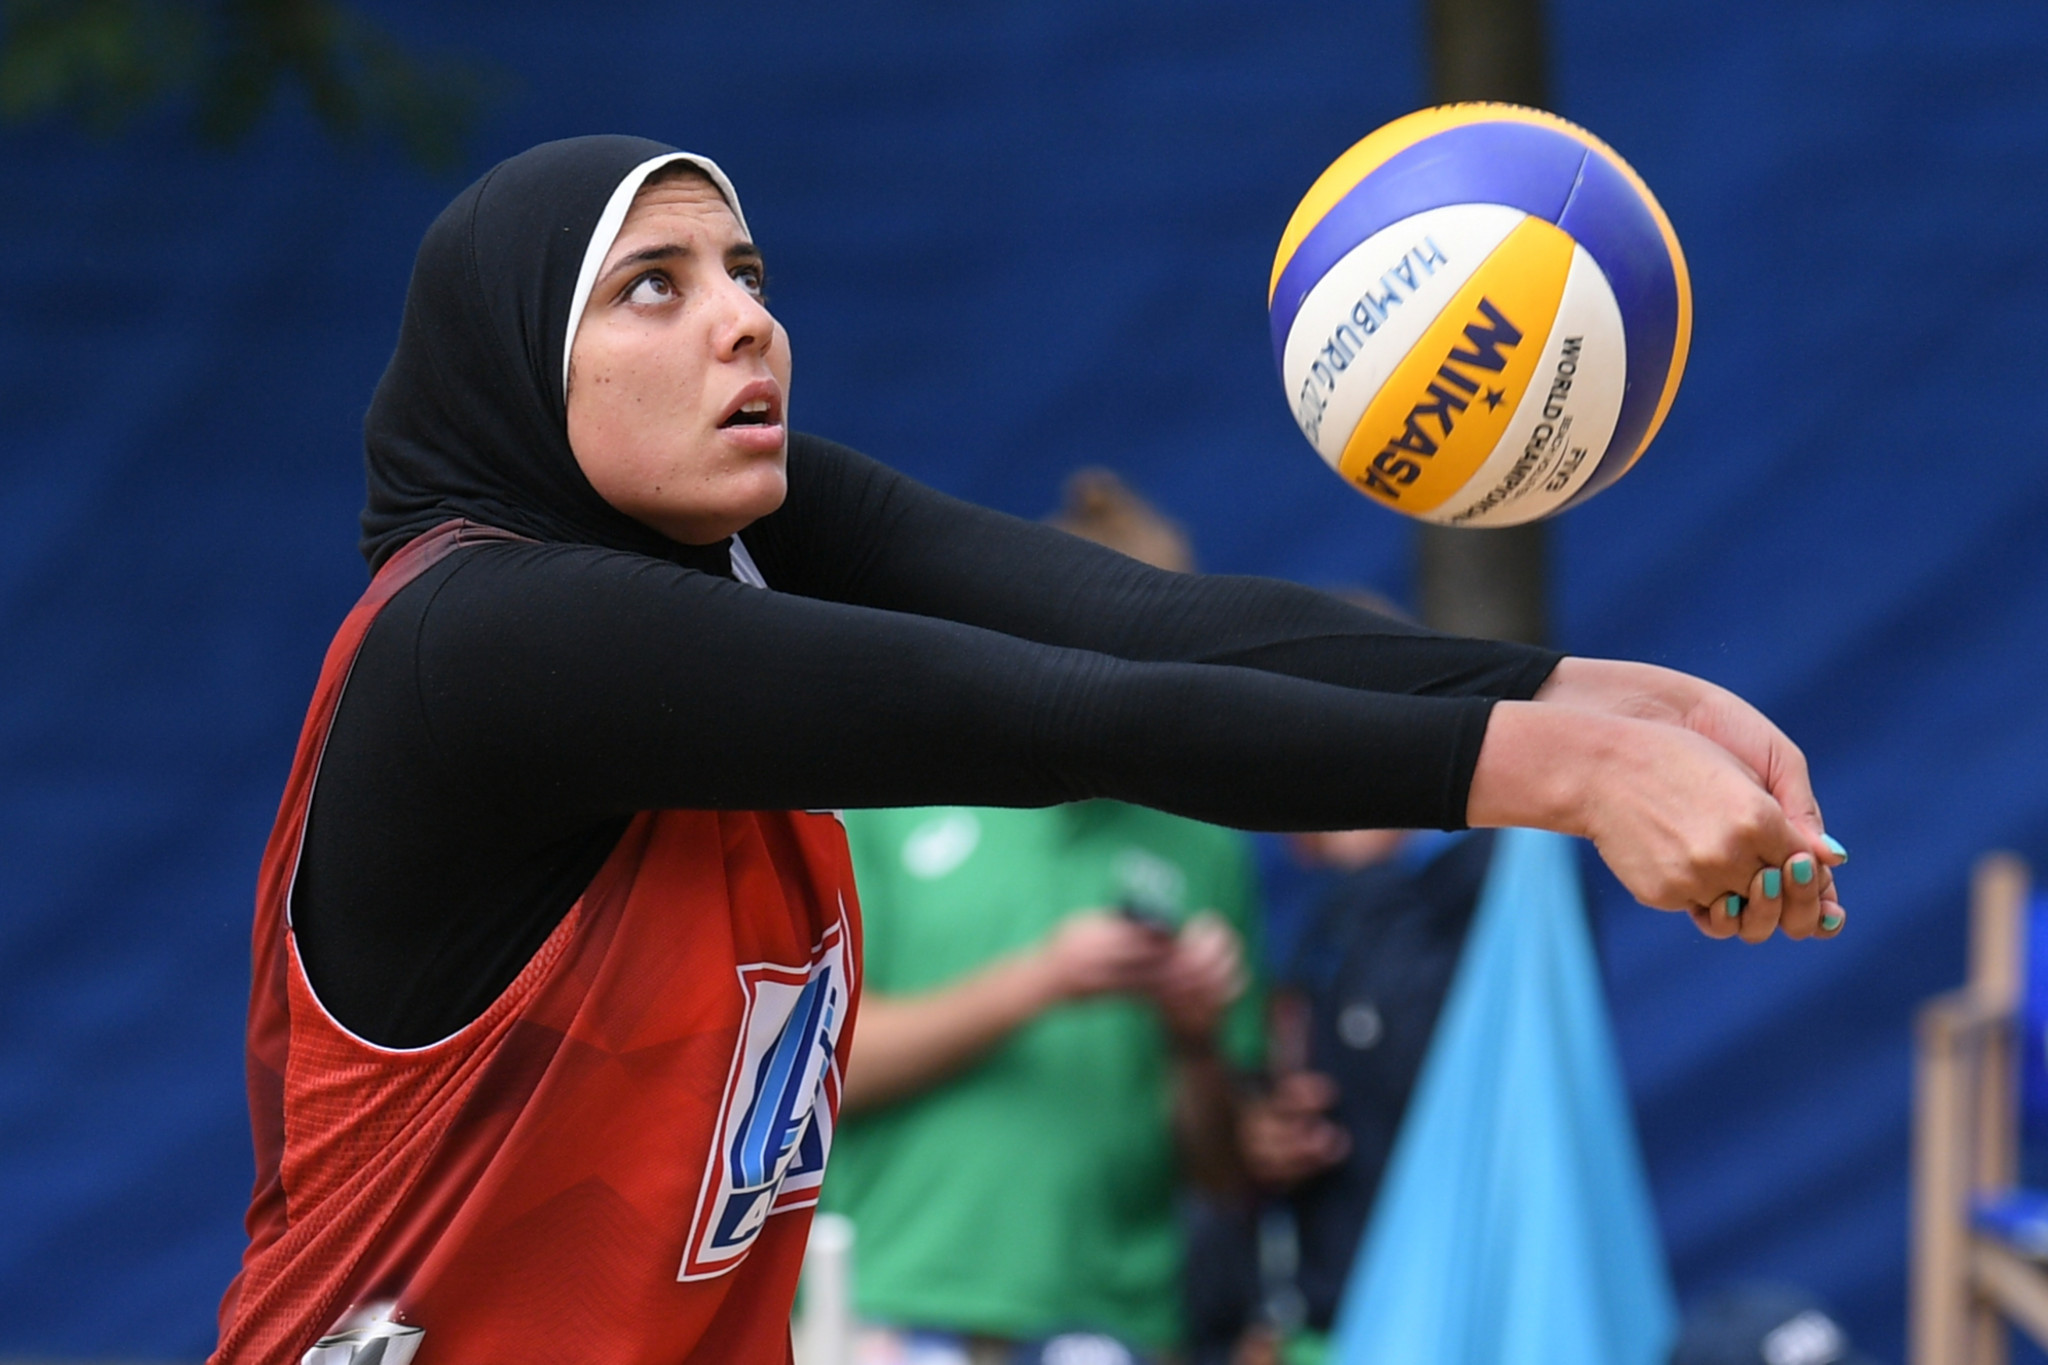 Doaa Elghobashy teamed up with Farida Elaskalany to win beach volleyball gold for Egypt ©Getty Images